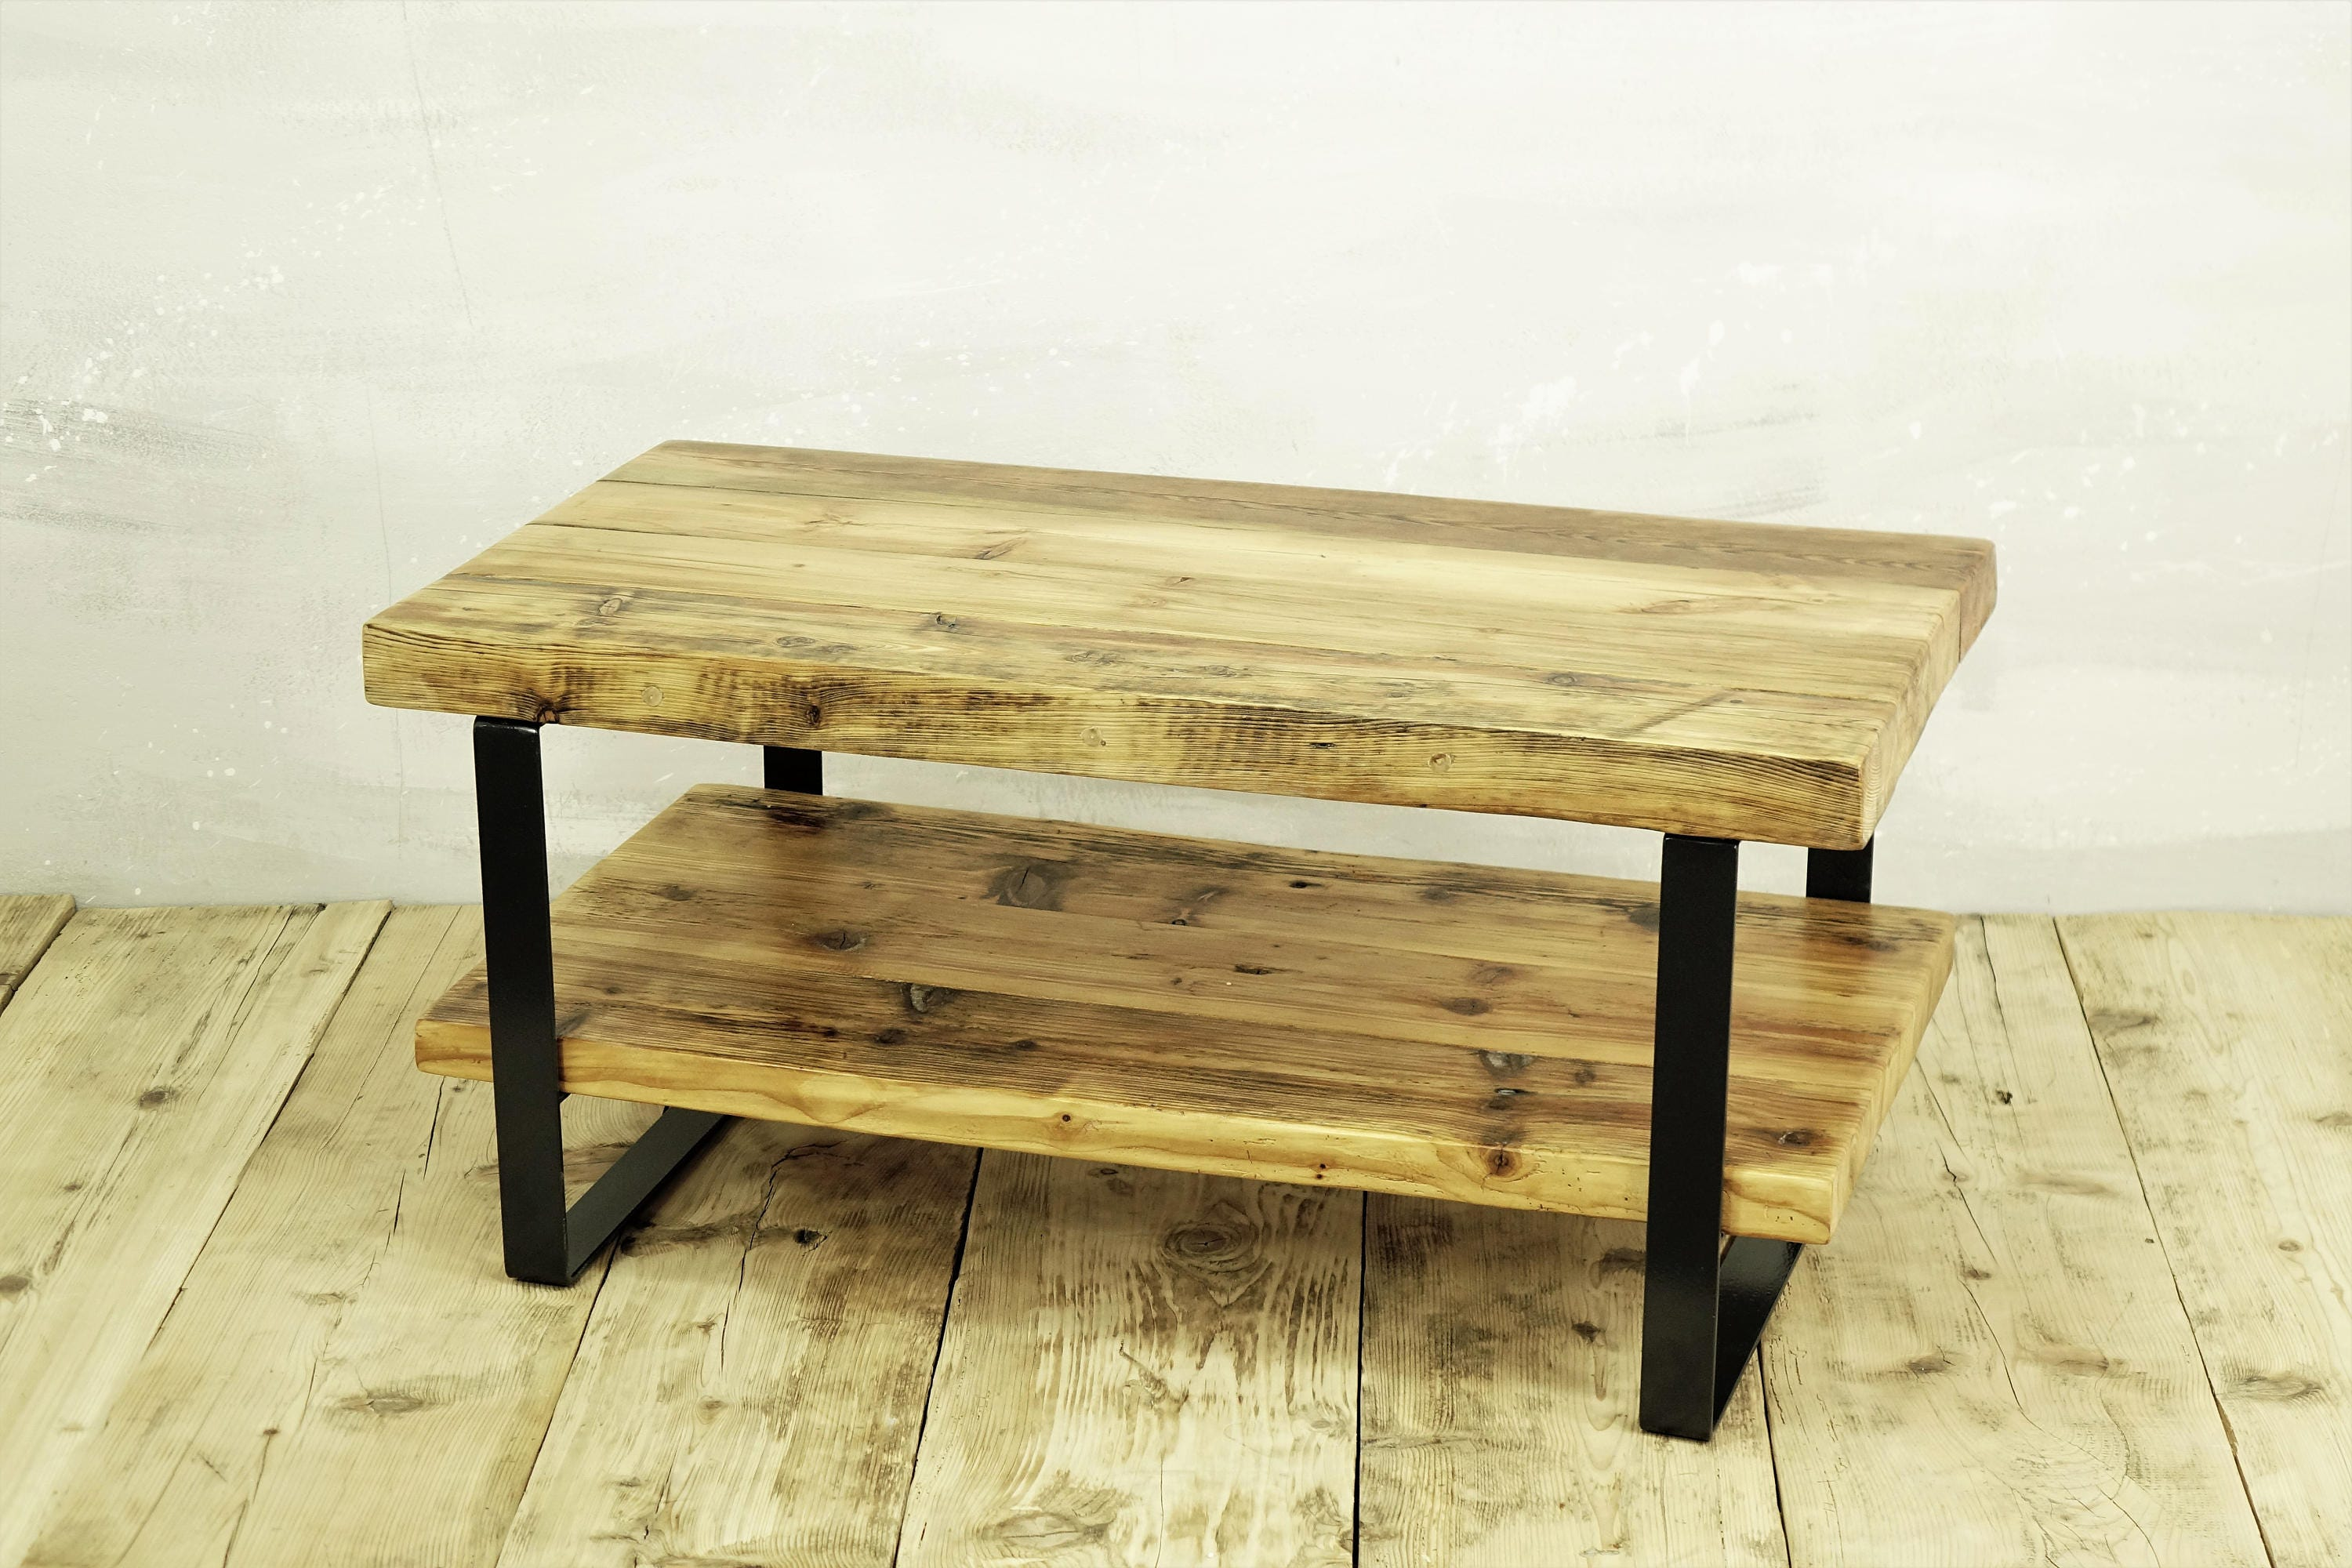 Reclaimed Timber Coffee Table With Shelf , 2 Level Coffee Table, Coffee  Table Storage, Old Beams Coffee Table